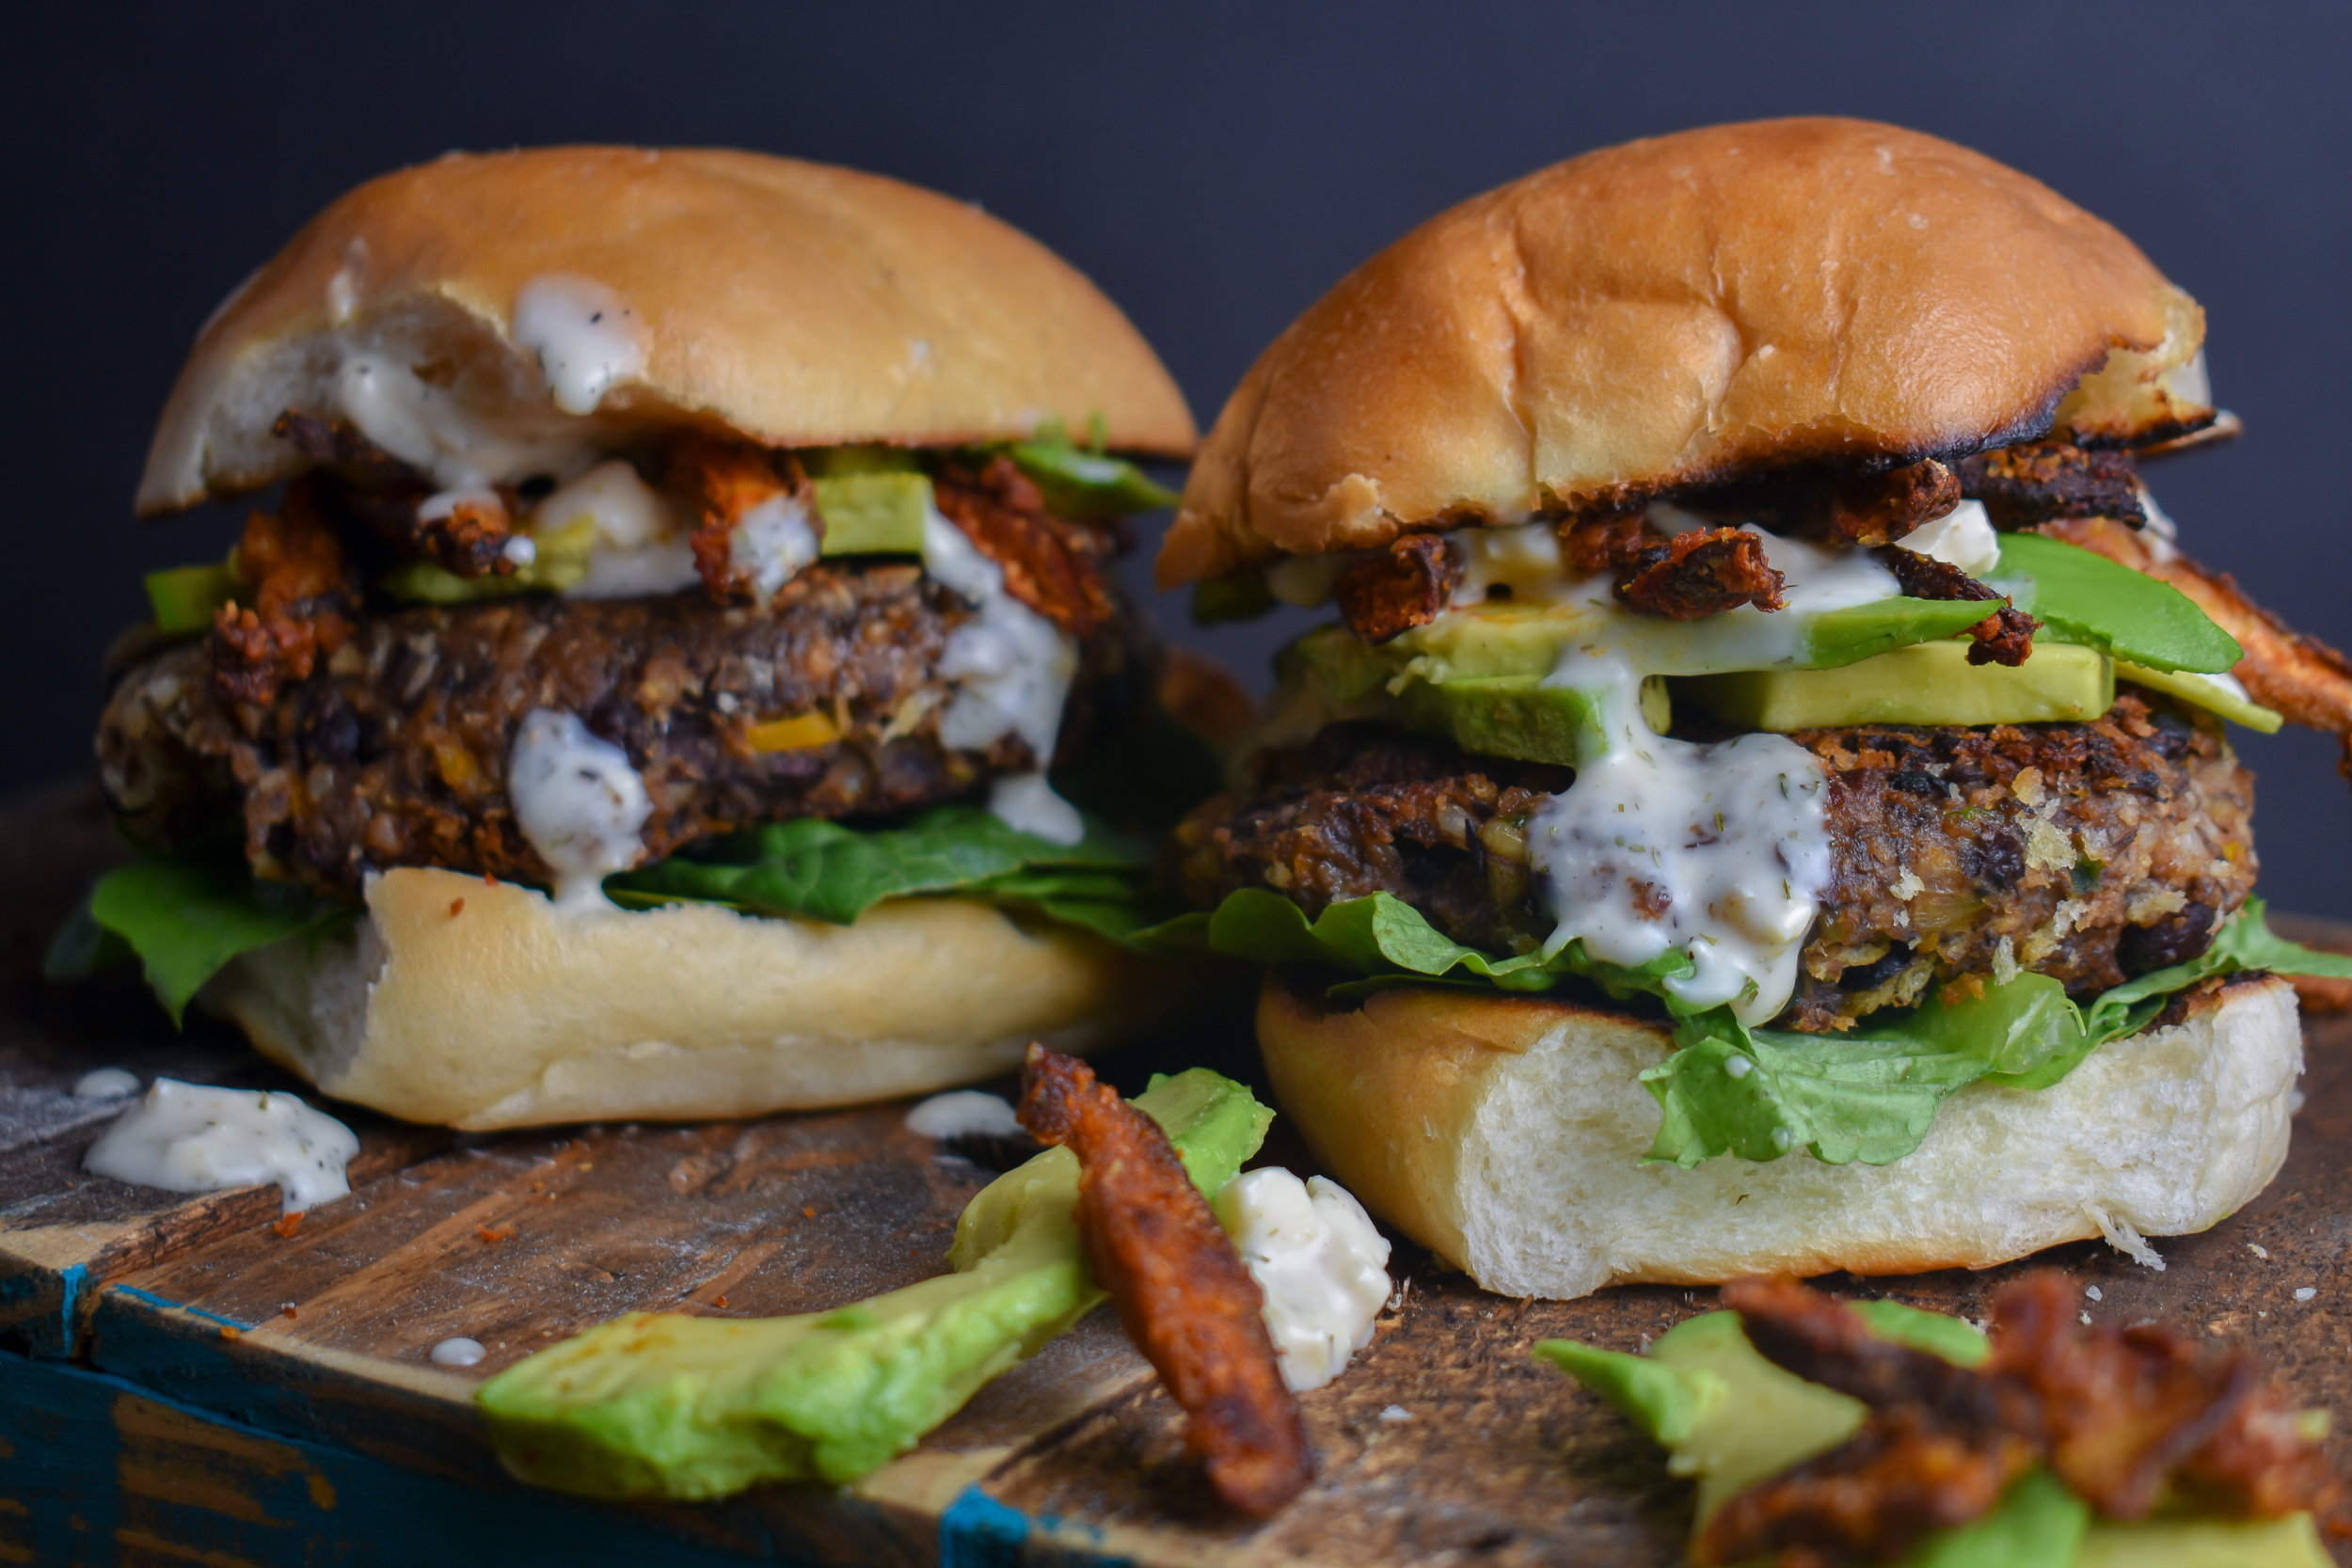 9. To put it all together, serve a toasted bun, with a layer of romaine, then the patty, add avocado slices, pour on the blue cheese sauce, and top with shiitake bacon. Serve!